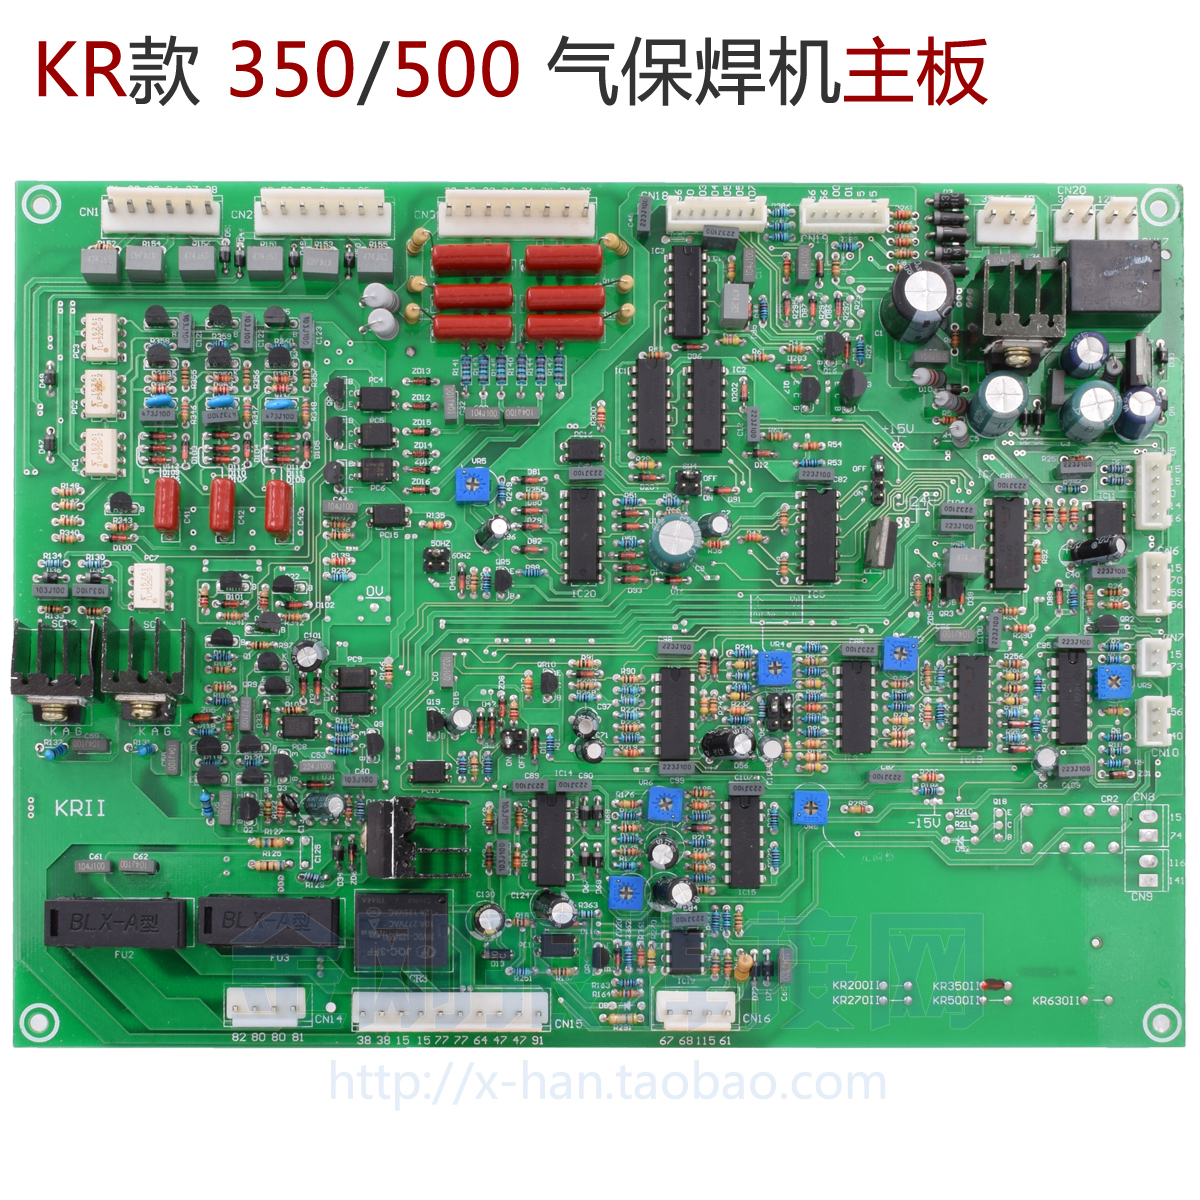 лучшая цена KR SCR air protection welding machine main board circuit board circuit board 350500 general maintenance accessories